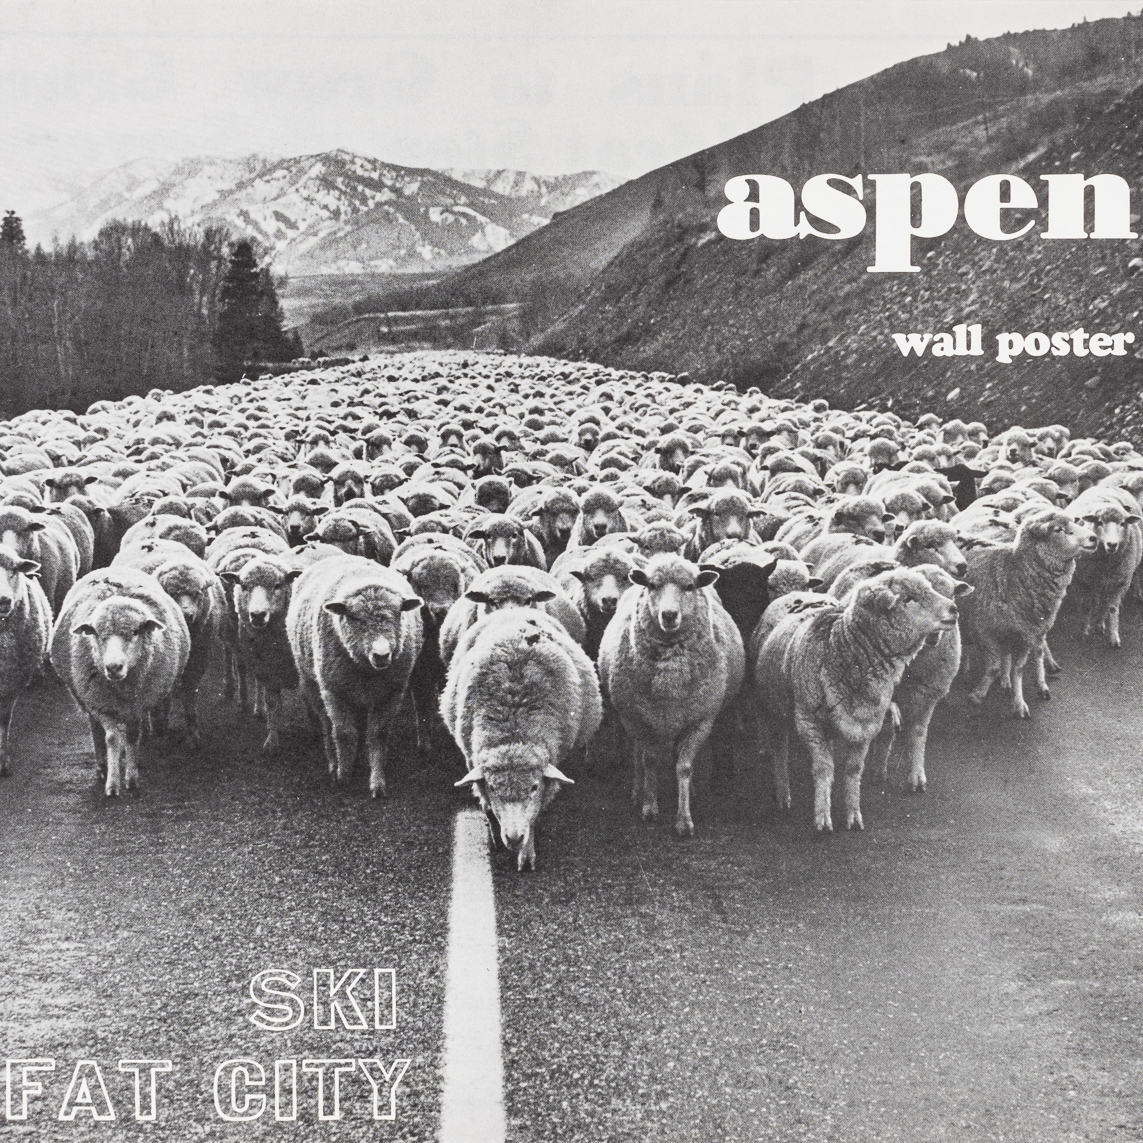 a black and white photograph of hundreds of sheep in the middle of a paved roadway. the text reads